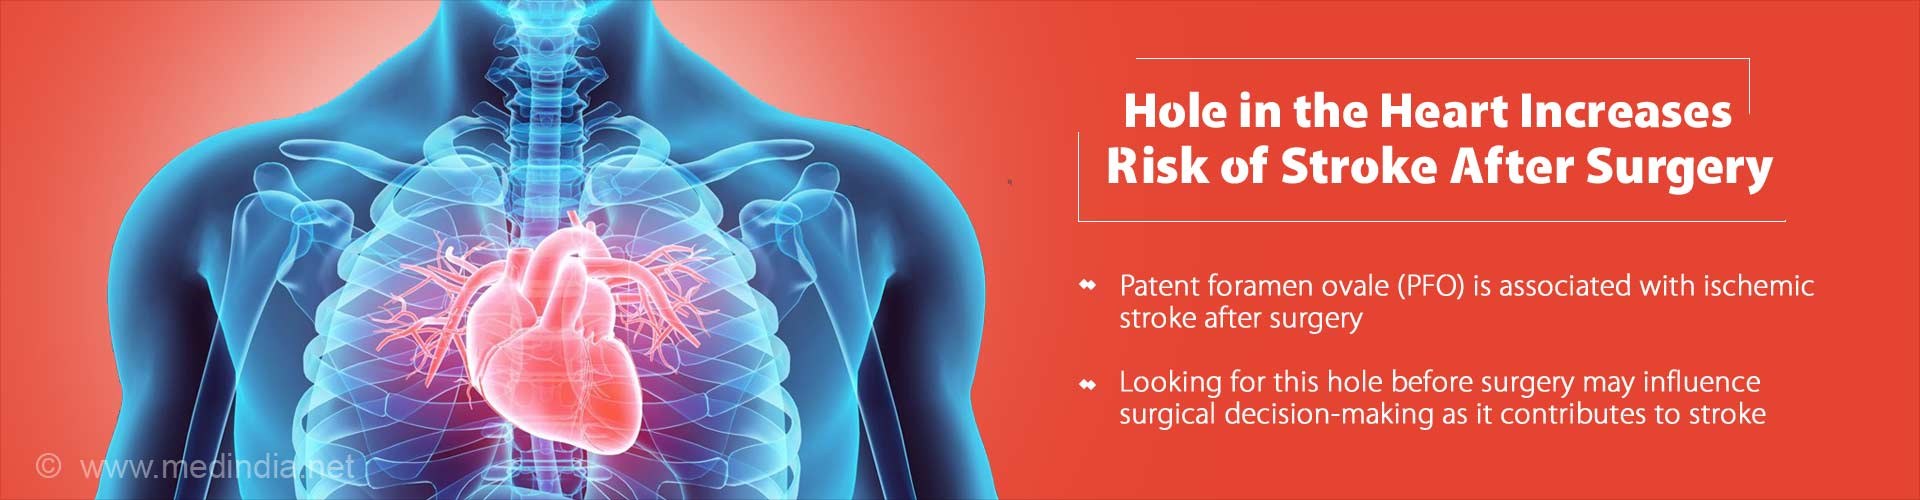 hole in the heart increases risk of stroke after surgery - patent foramen ovale (PFO) is associated with ischemic stroke after surgery - looking for this hole before surgery may influence surgical decision-making as it contributes to stroke